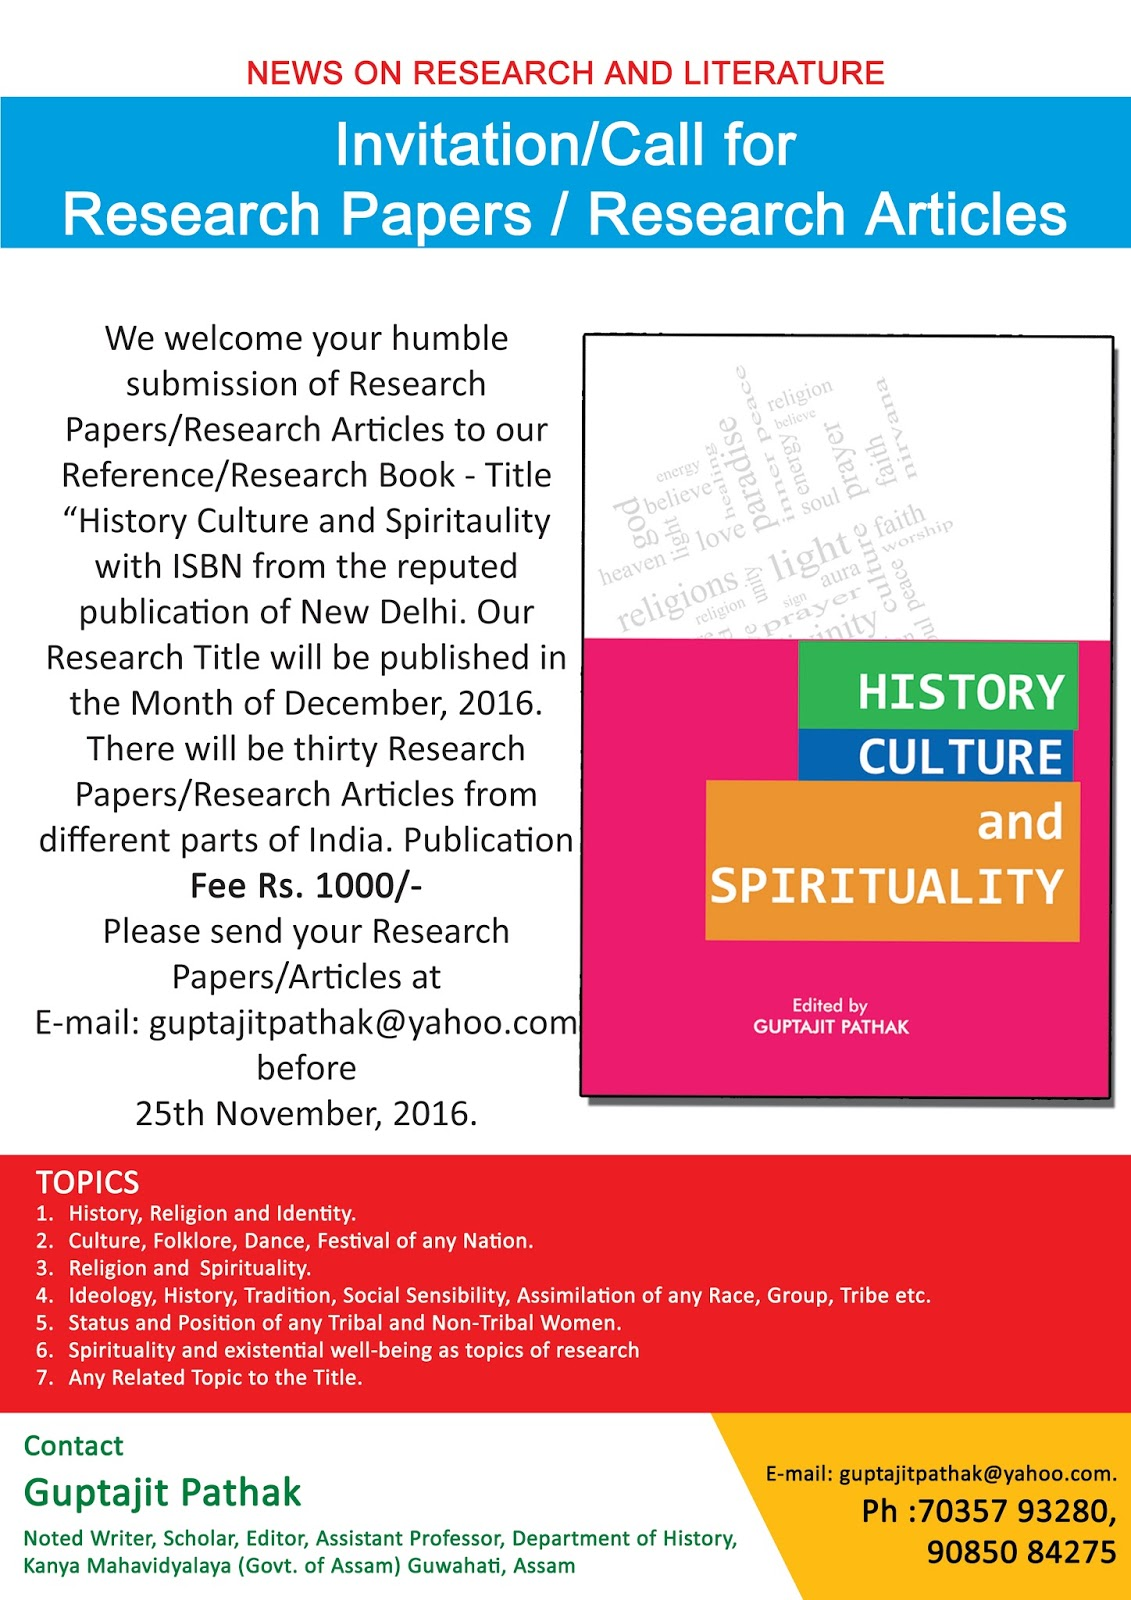 spirituality research papers Submit paper about scientific research on spirituality and health: an annotated bibliography of clinical research on spiritual subjects.